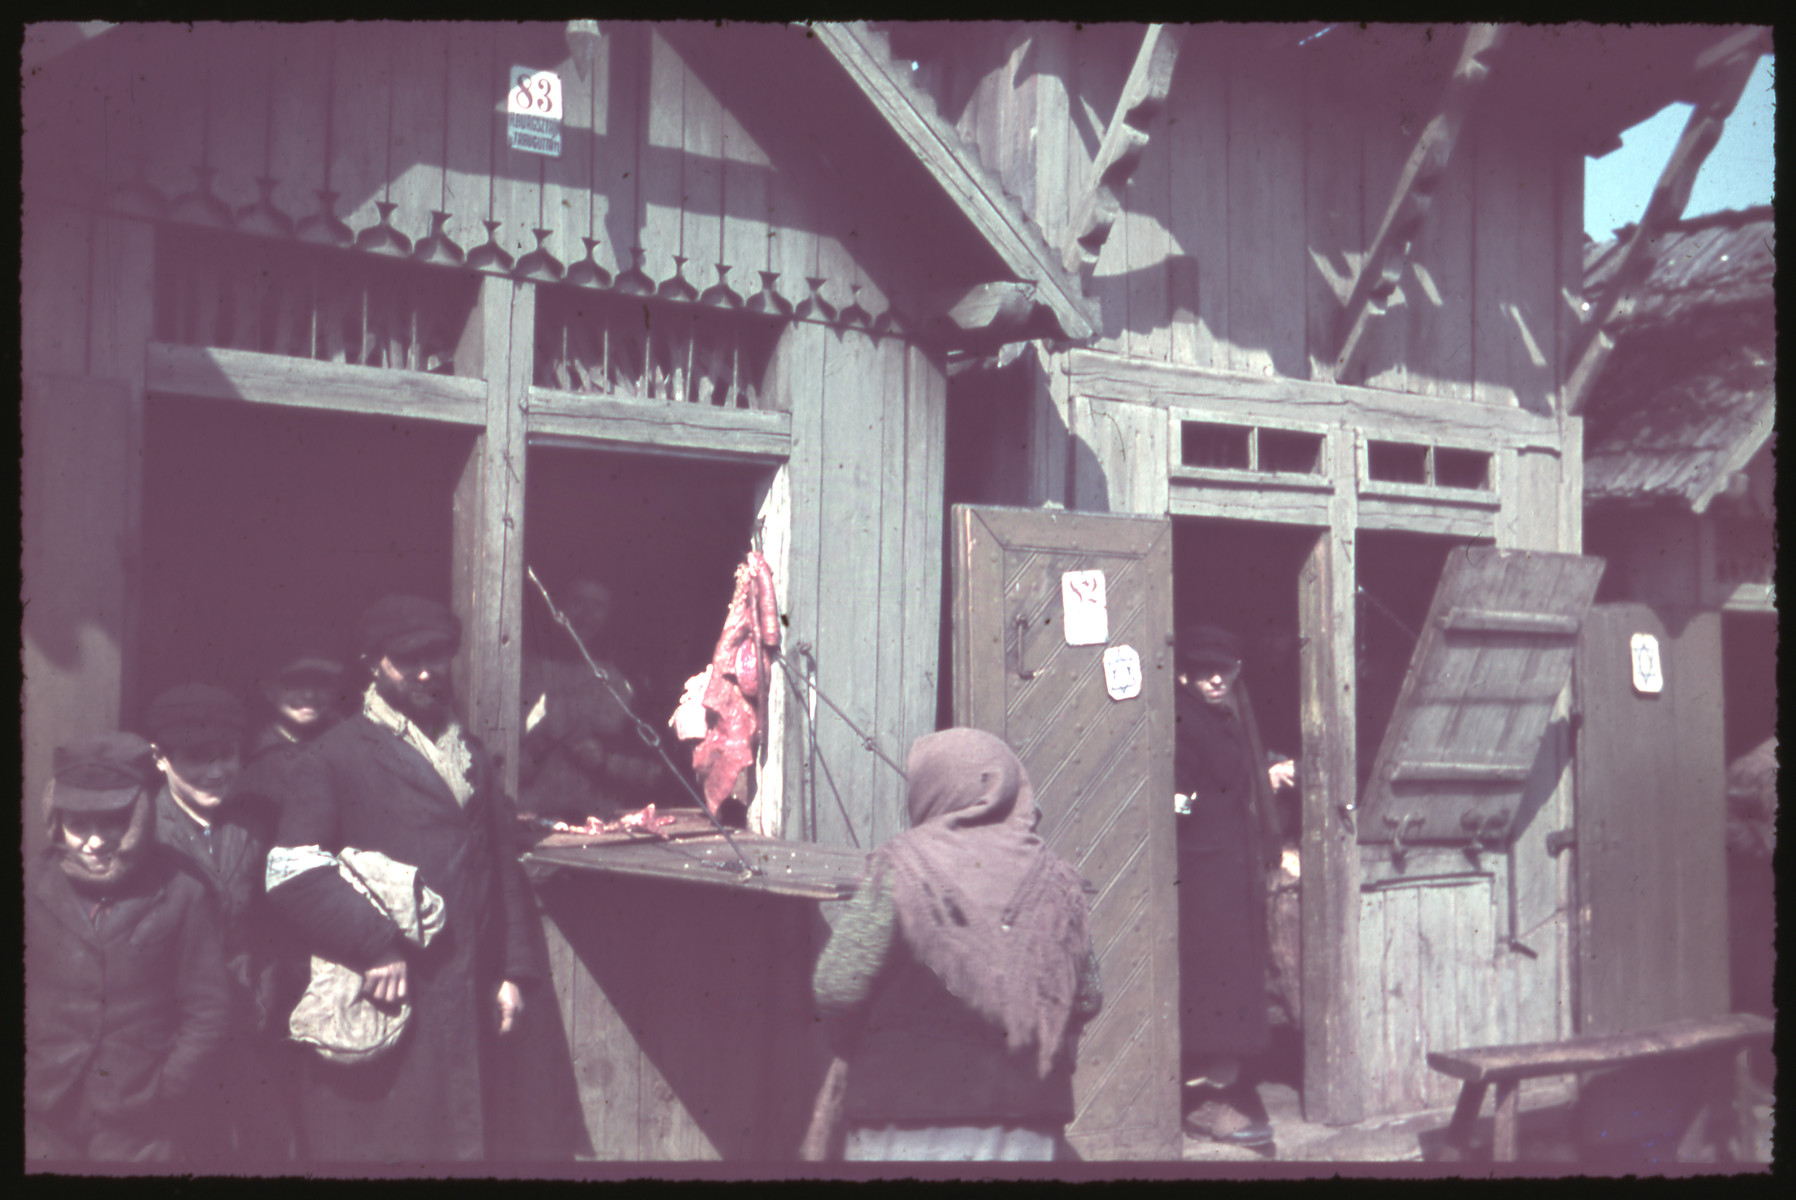 Jews shop in a store marked with a Jewish star on its door [possibly in Kozienice].